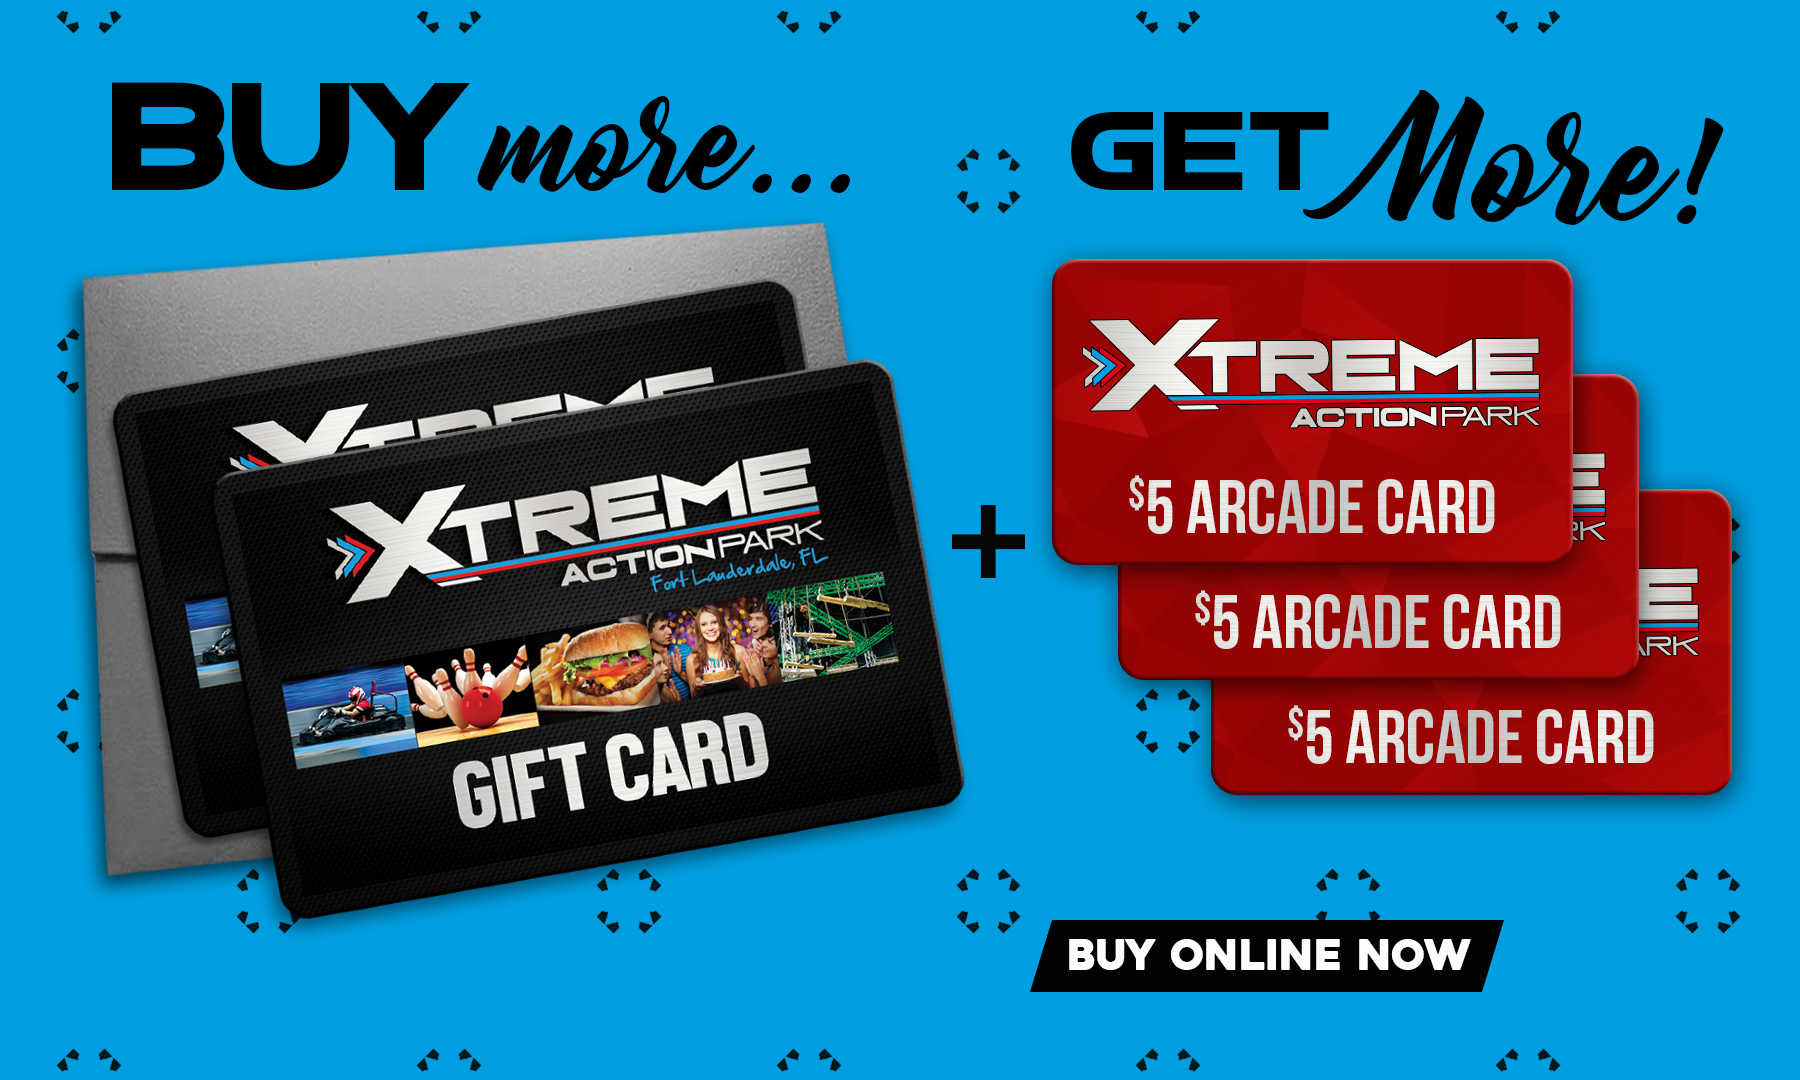 buy a gift card give the perfect gift